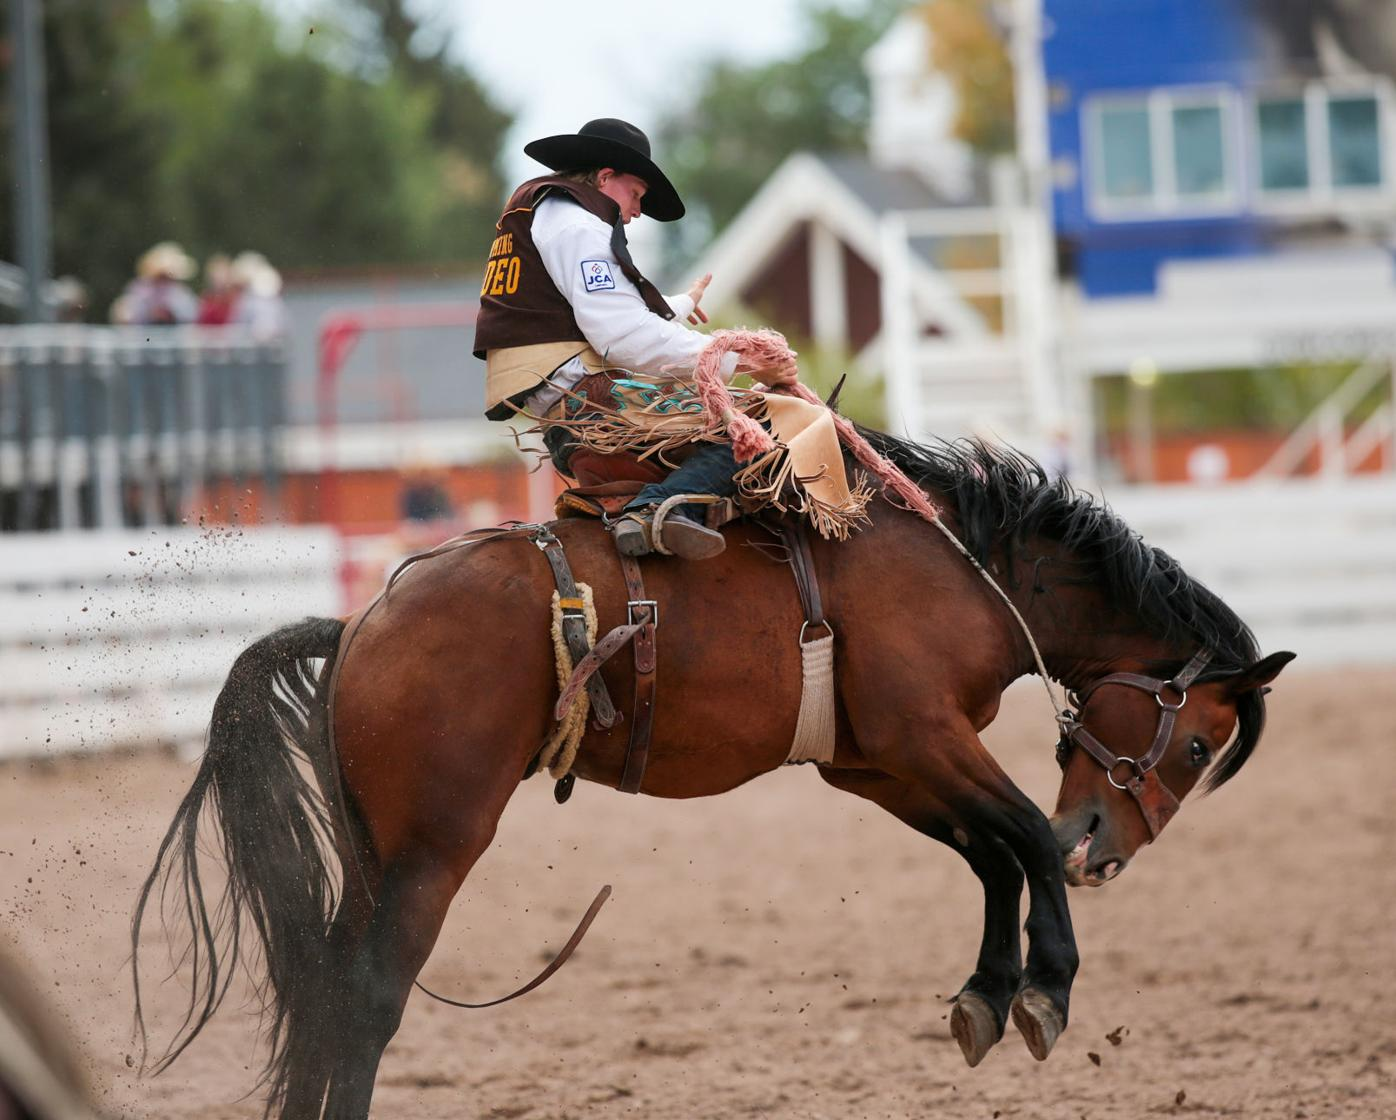 20210912-spts-lcccrodeo-rg-01.JPG